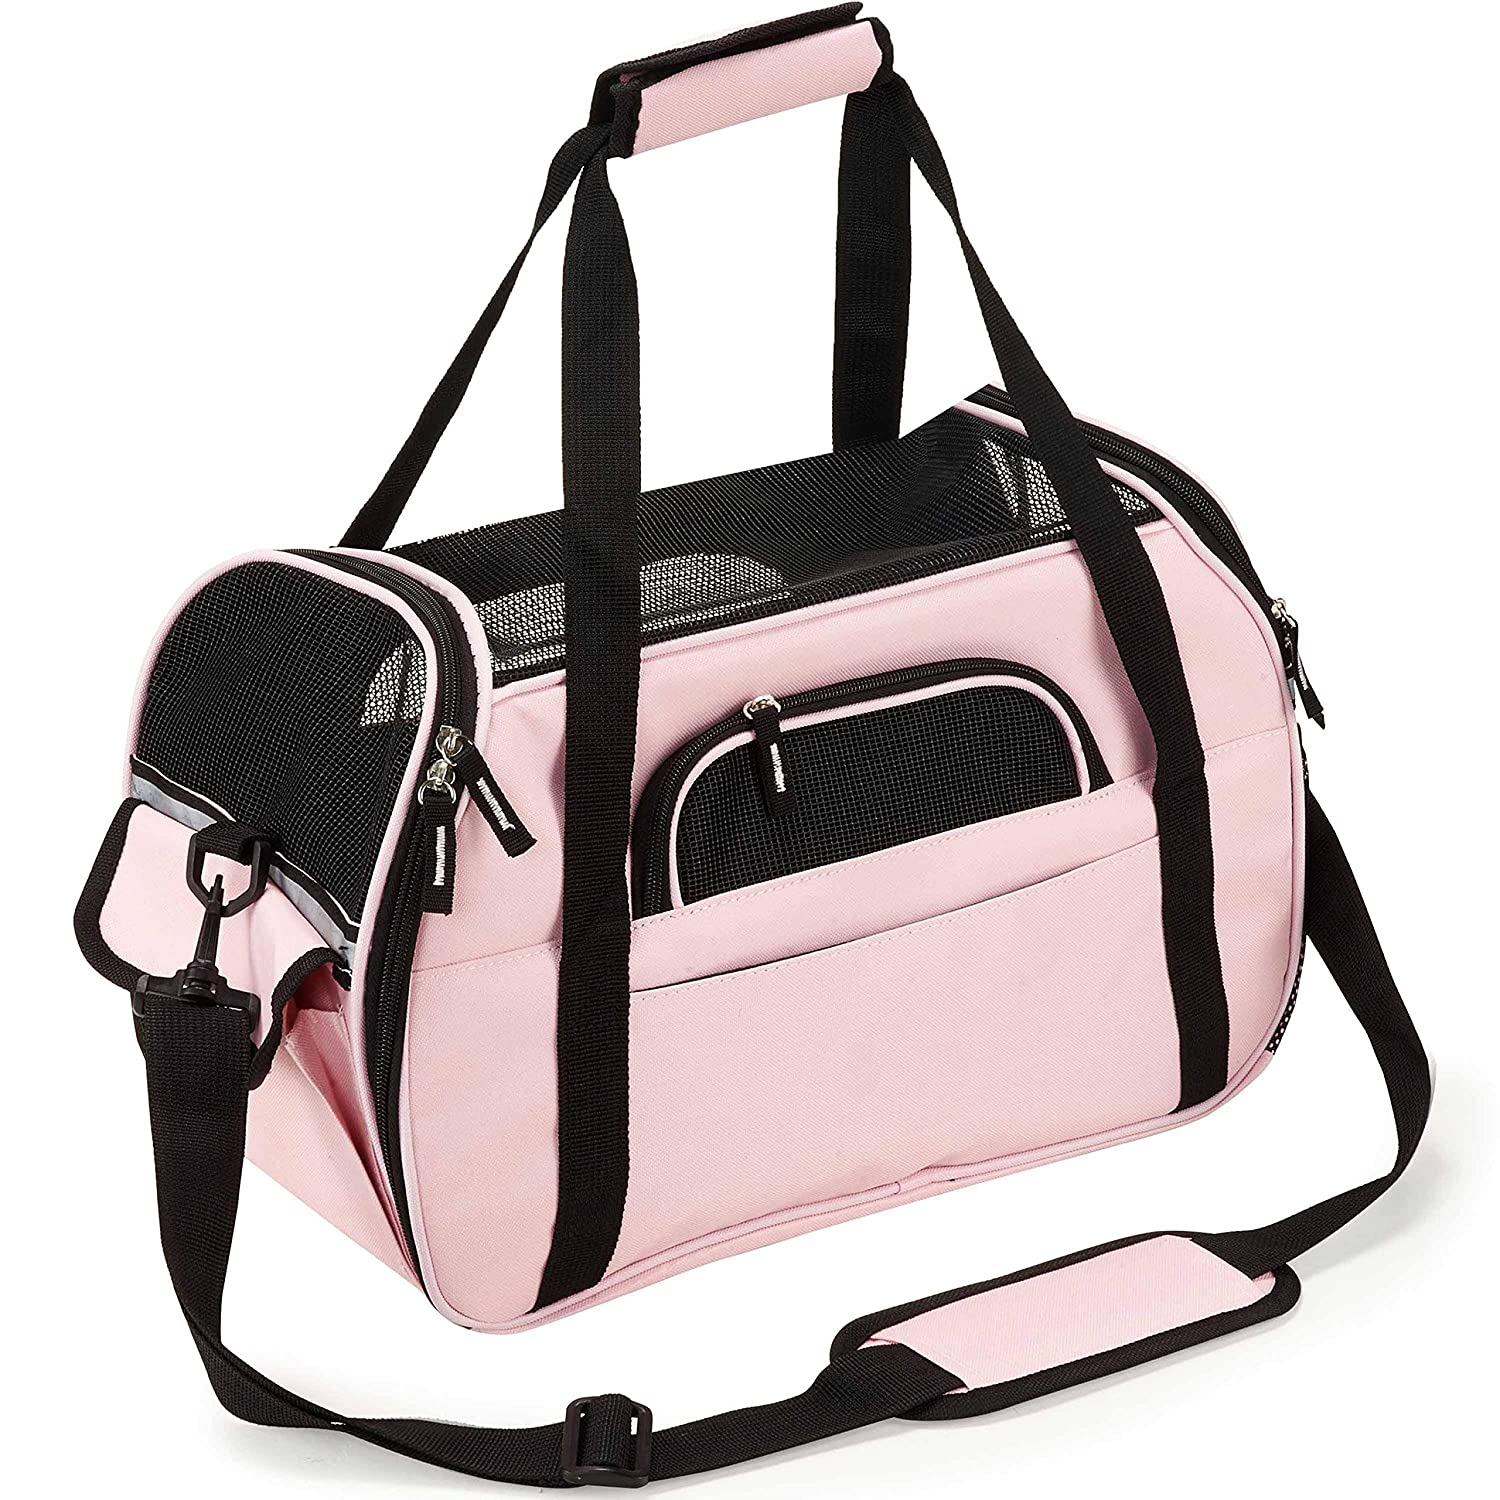 Soft-Sided Pet Carrier for Dogs Cats Travel Bag Tote Airline Approved Under Seat PETTOM